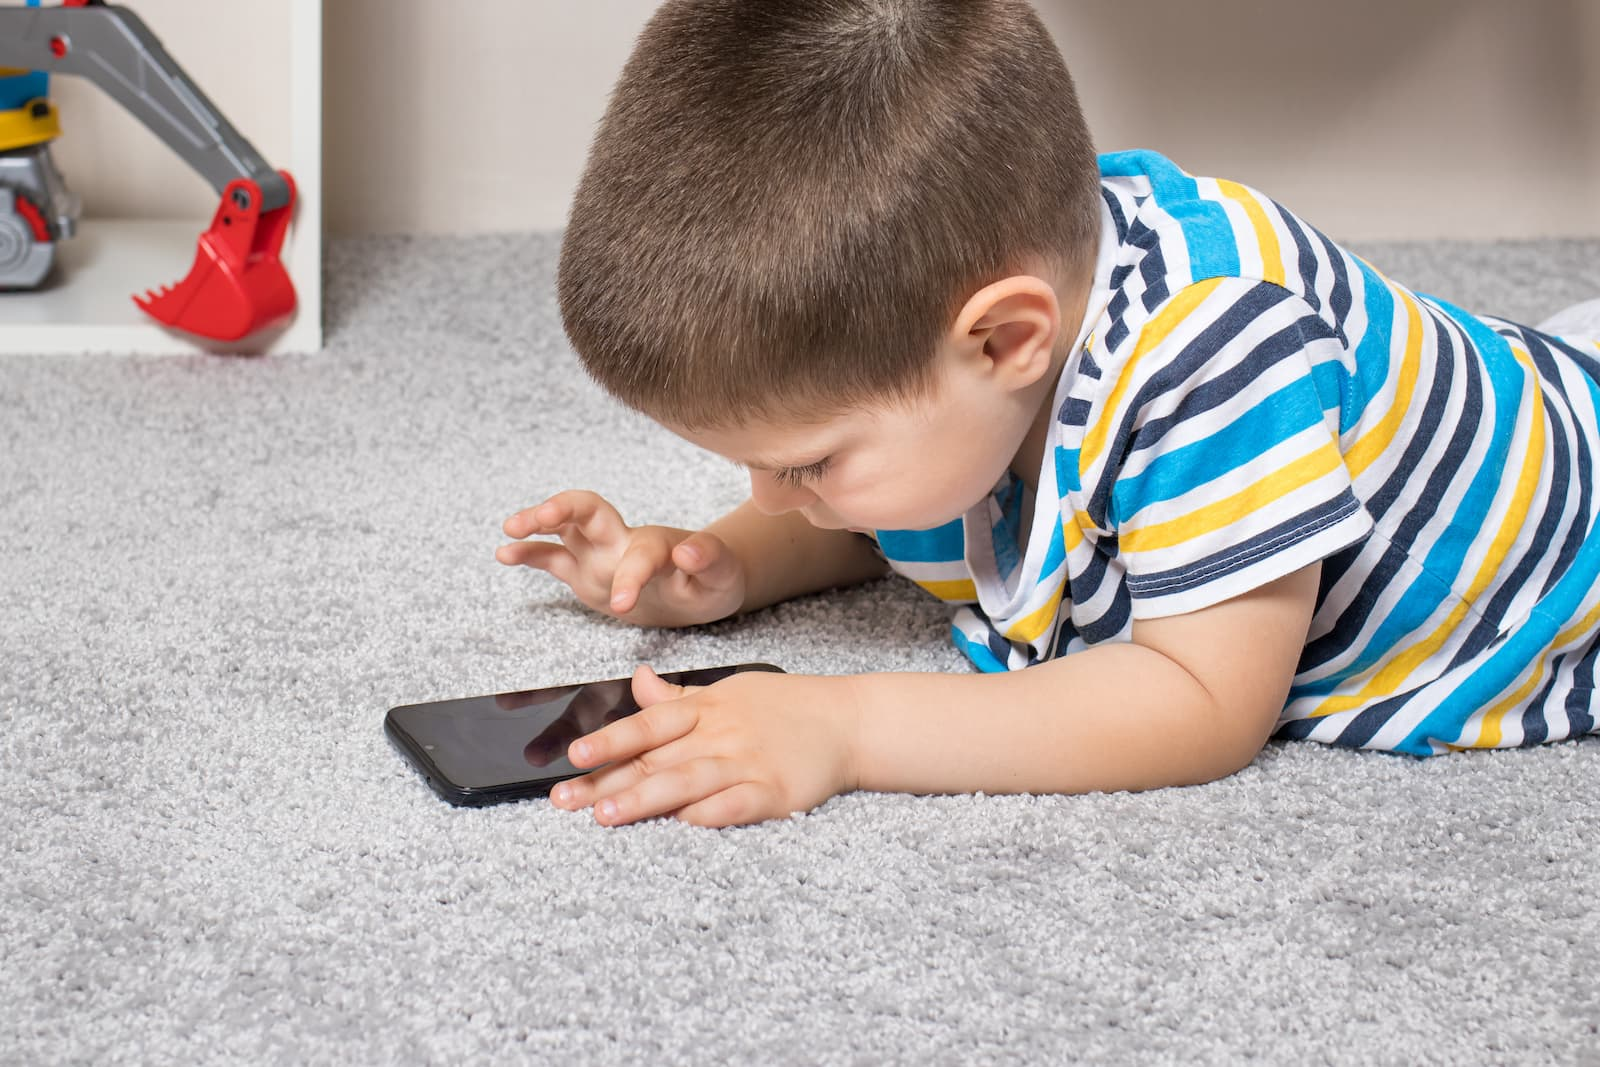 Are electronics related to myopia in children